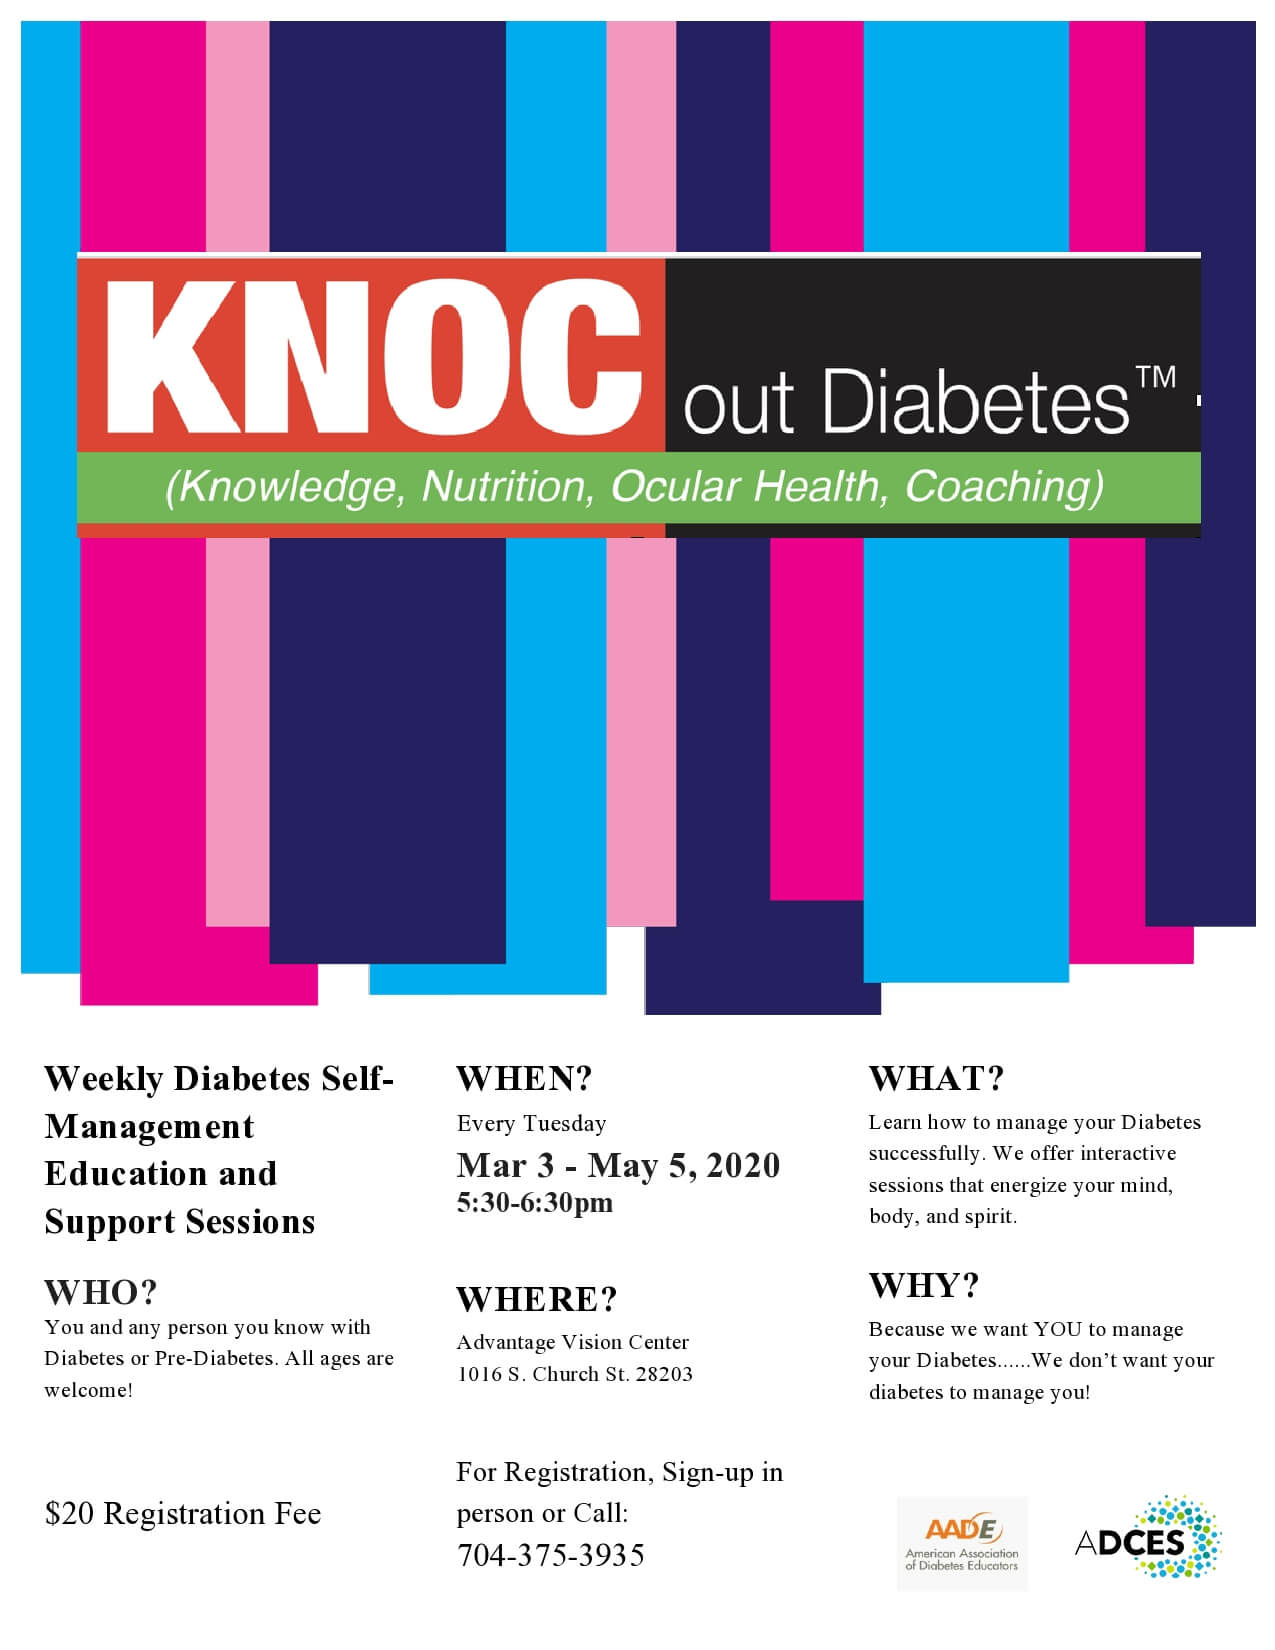 Knoc Out Diabetes - Optometrist in Charlotte, North Carolina